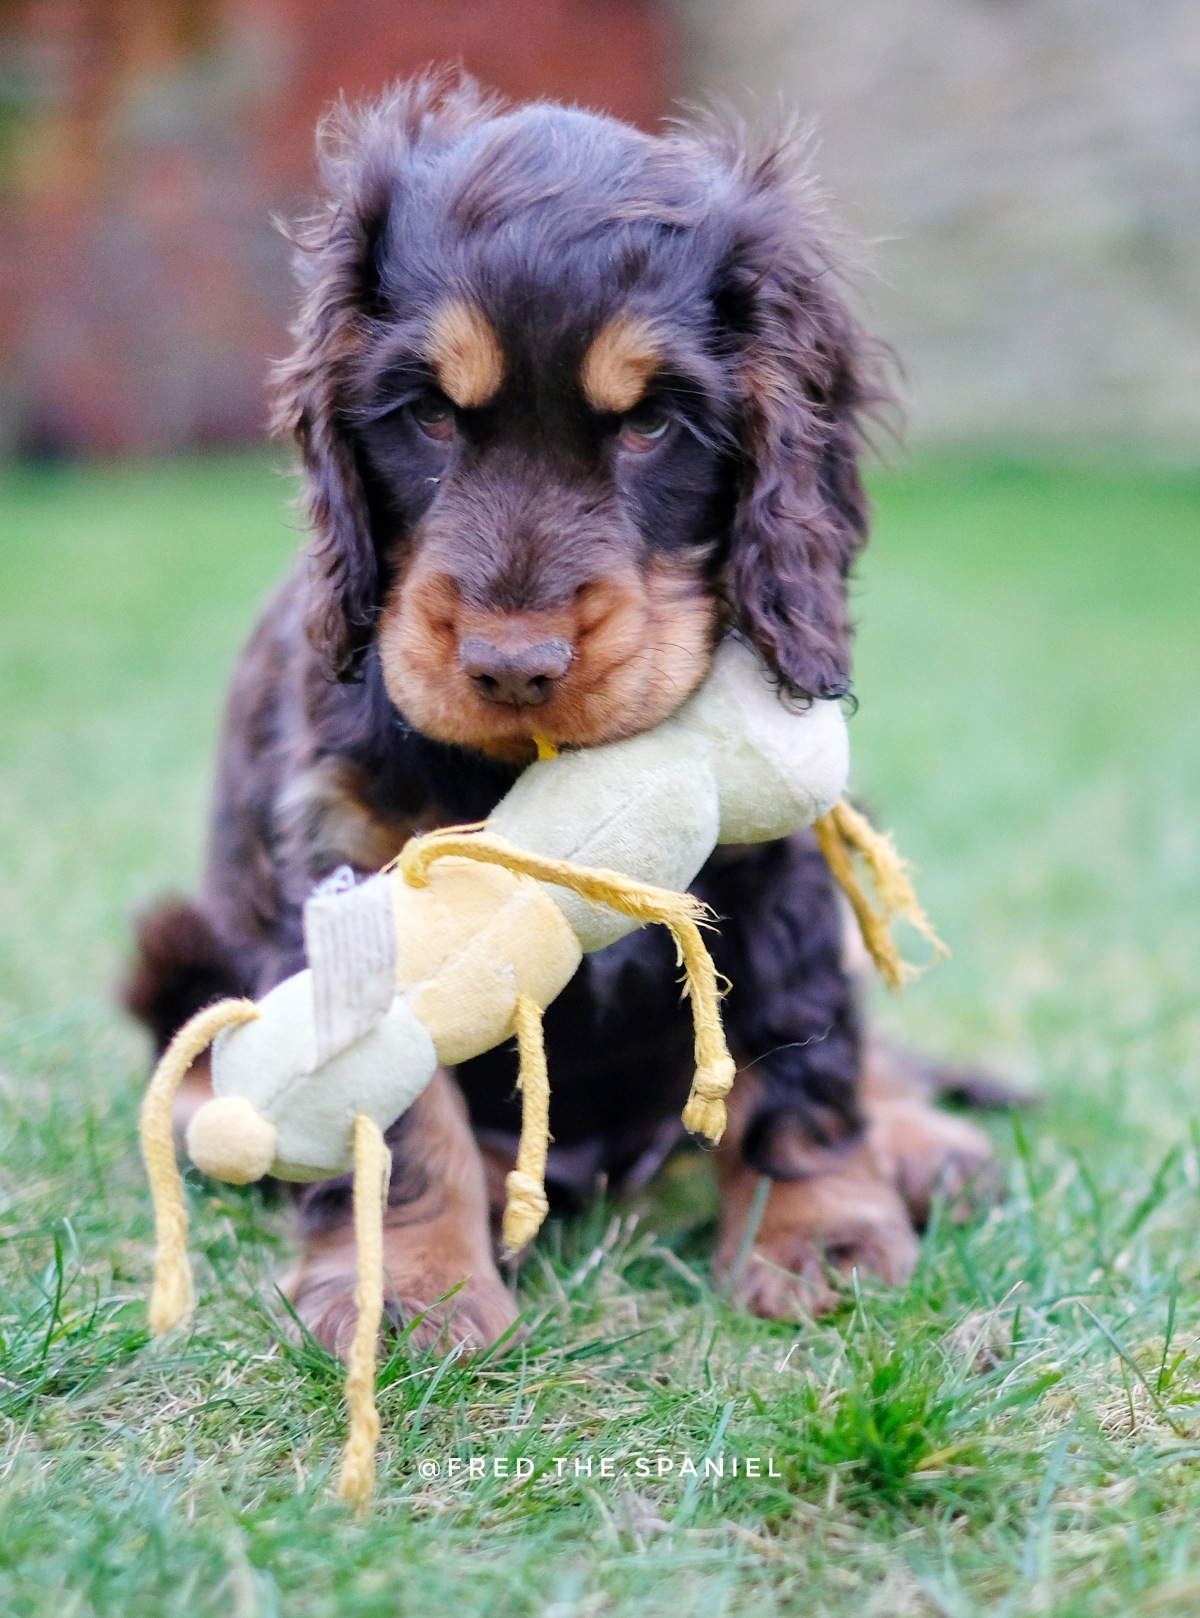 Fred, my chocolate and tan cocker spaniel puppy with his organic dog toy / best toys and chews for teething puppies / first puppy advice and tips / first published on perfect cocker spaniel blog (C) Natalia Ashton